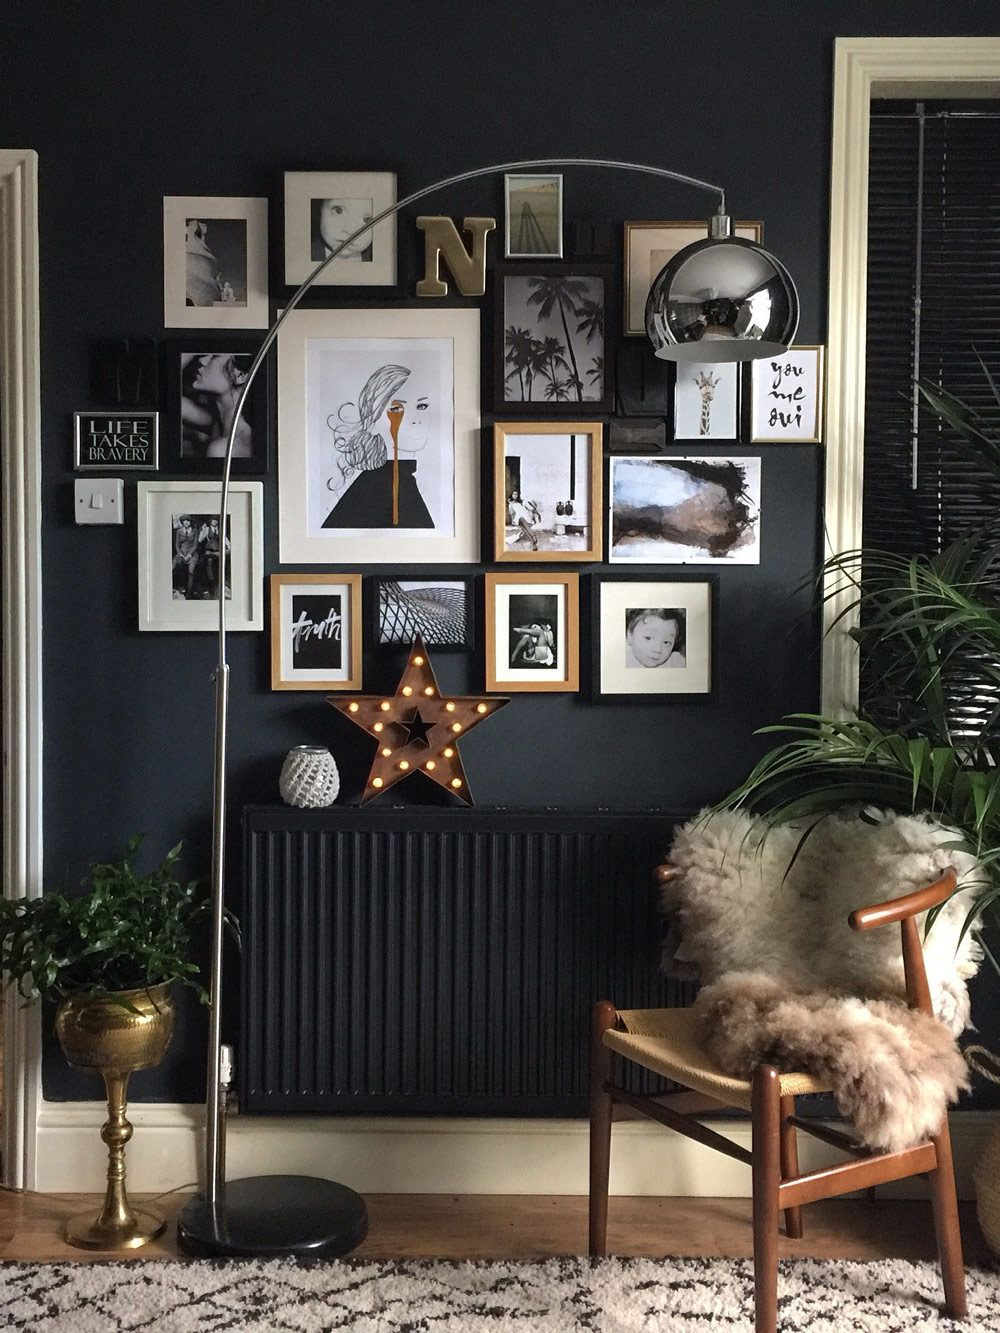 *especially love the dark walls* With historic details as the backdrop of their art-filled home, Nadia and Mark Singleton live in a 1,500-square-foot dwelling in Leicestershire, England.